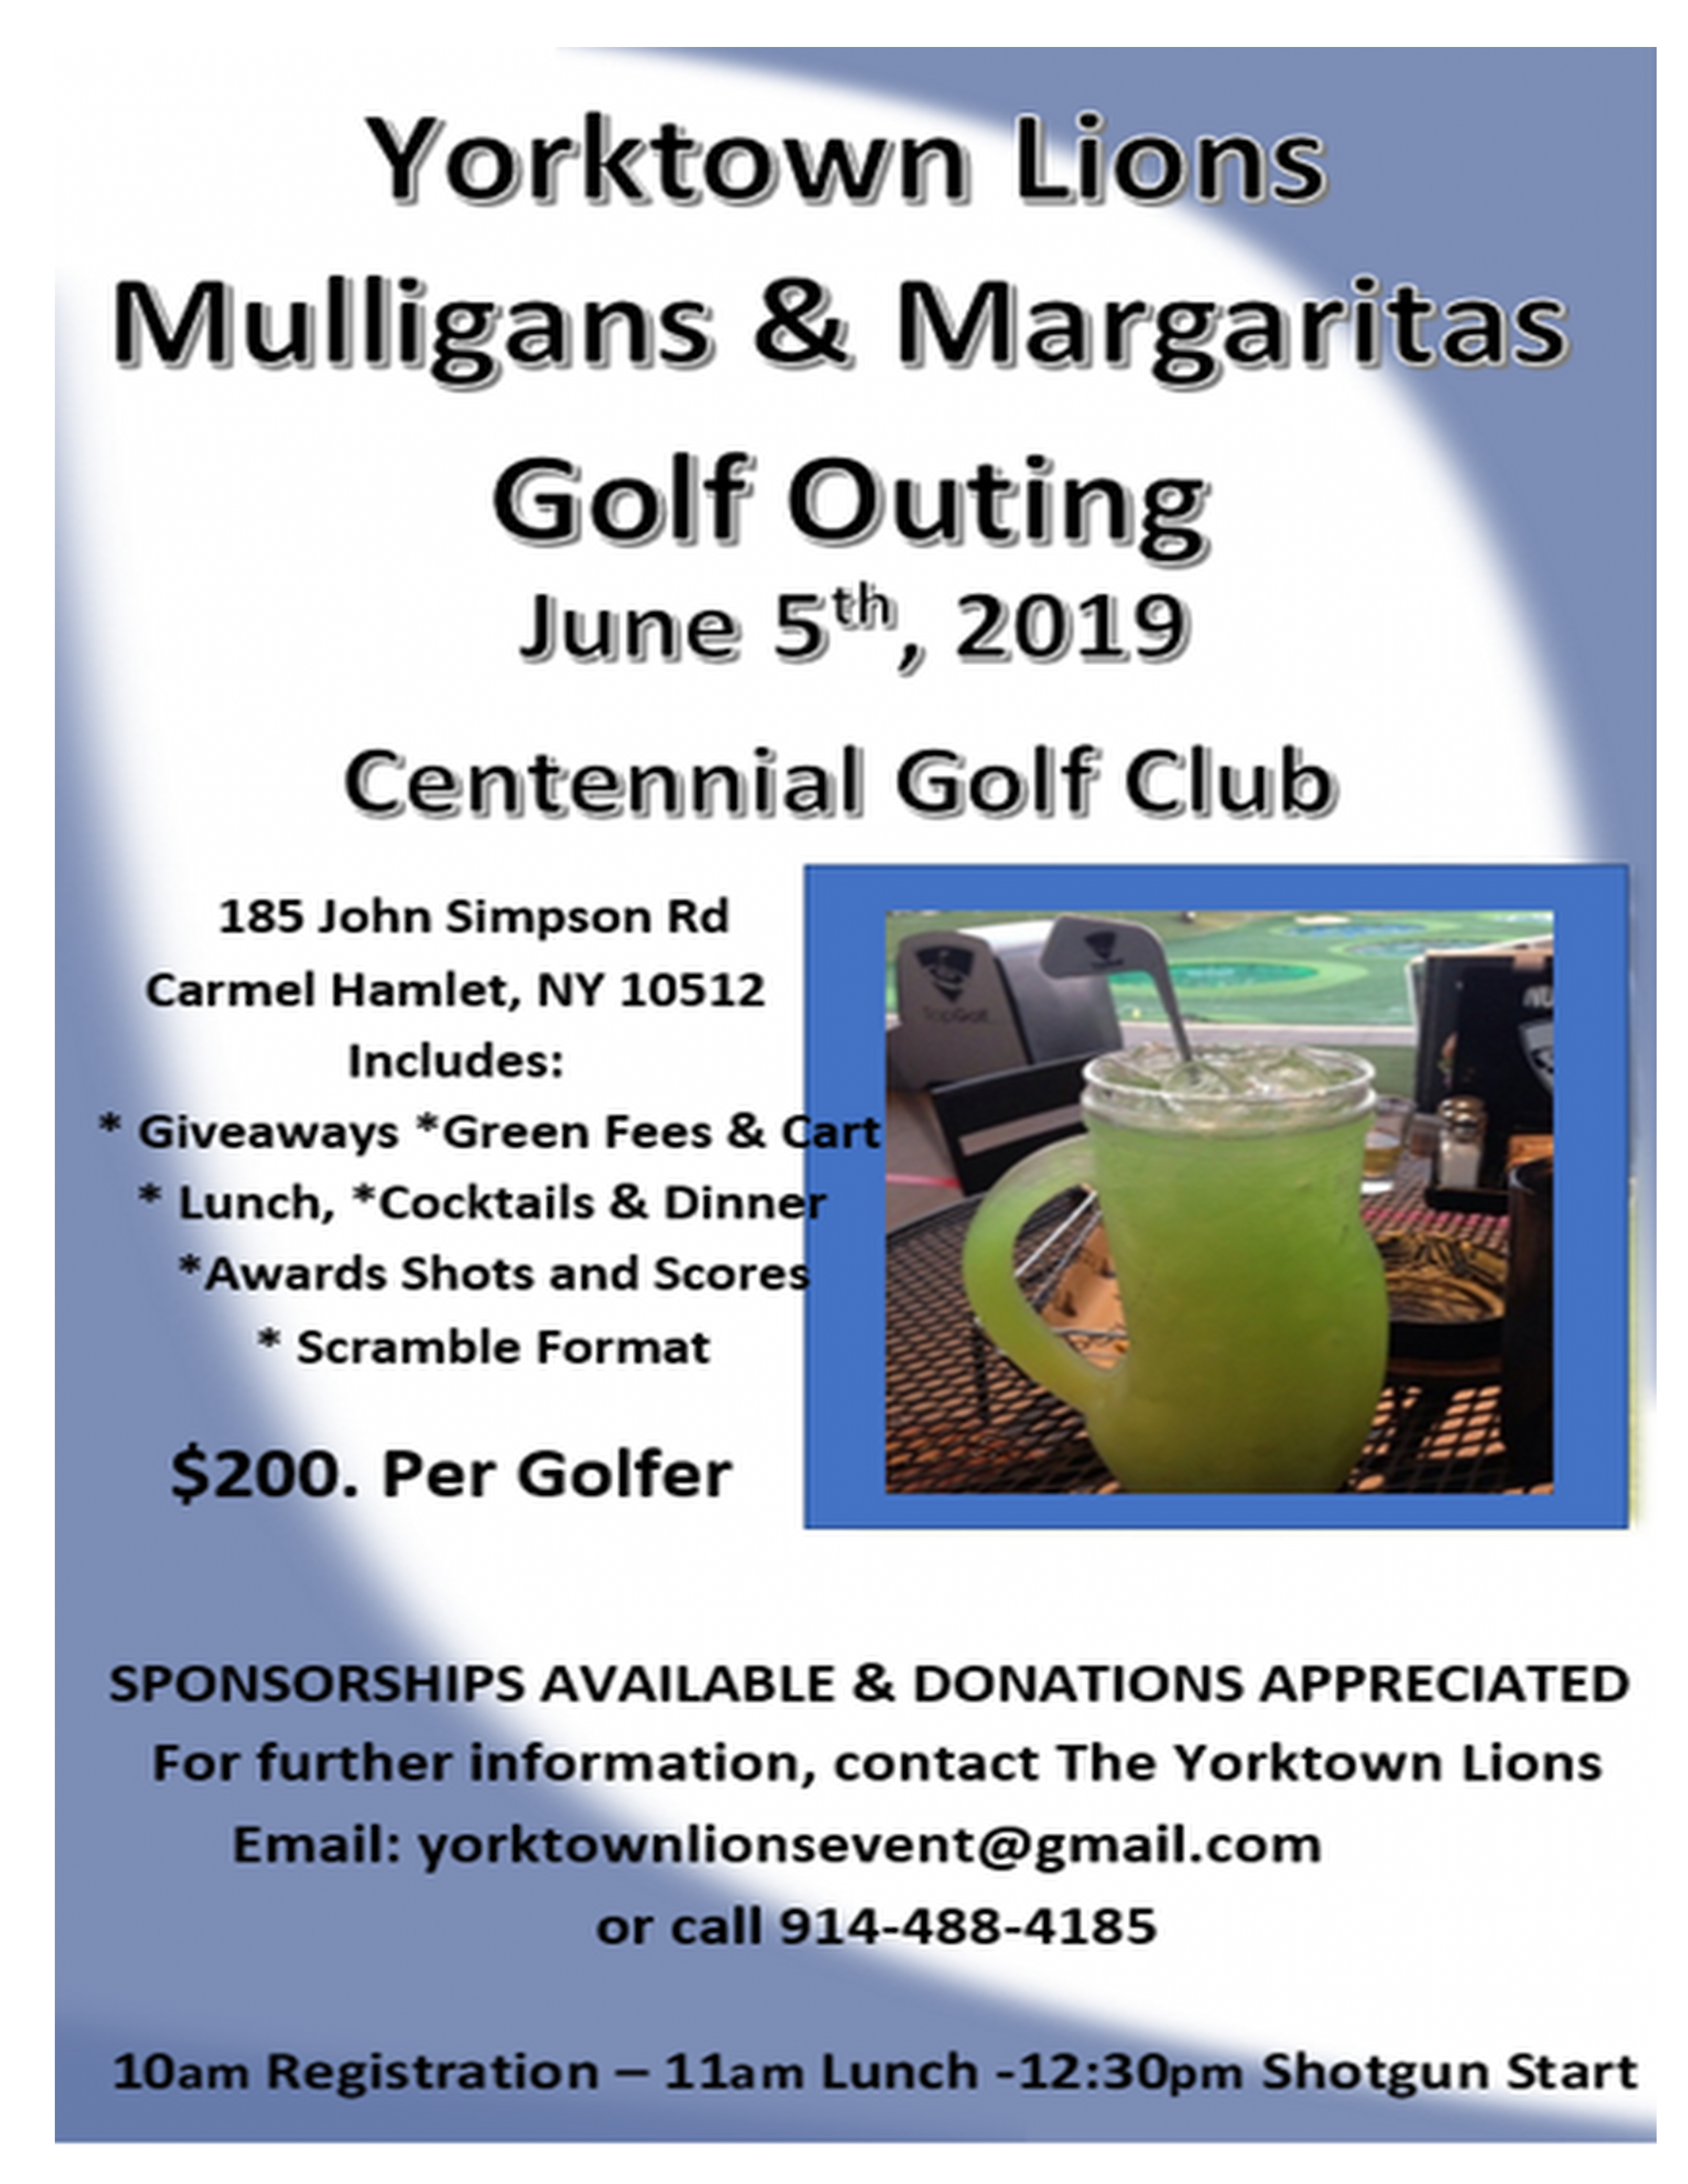 GOLF OUTING BROCHURE PAGE 1